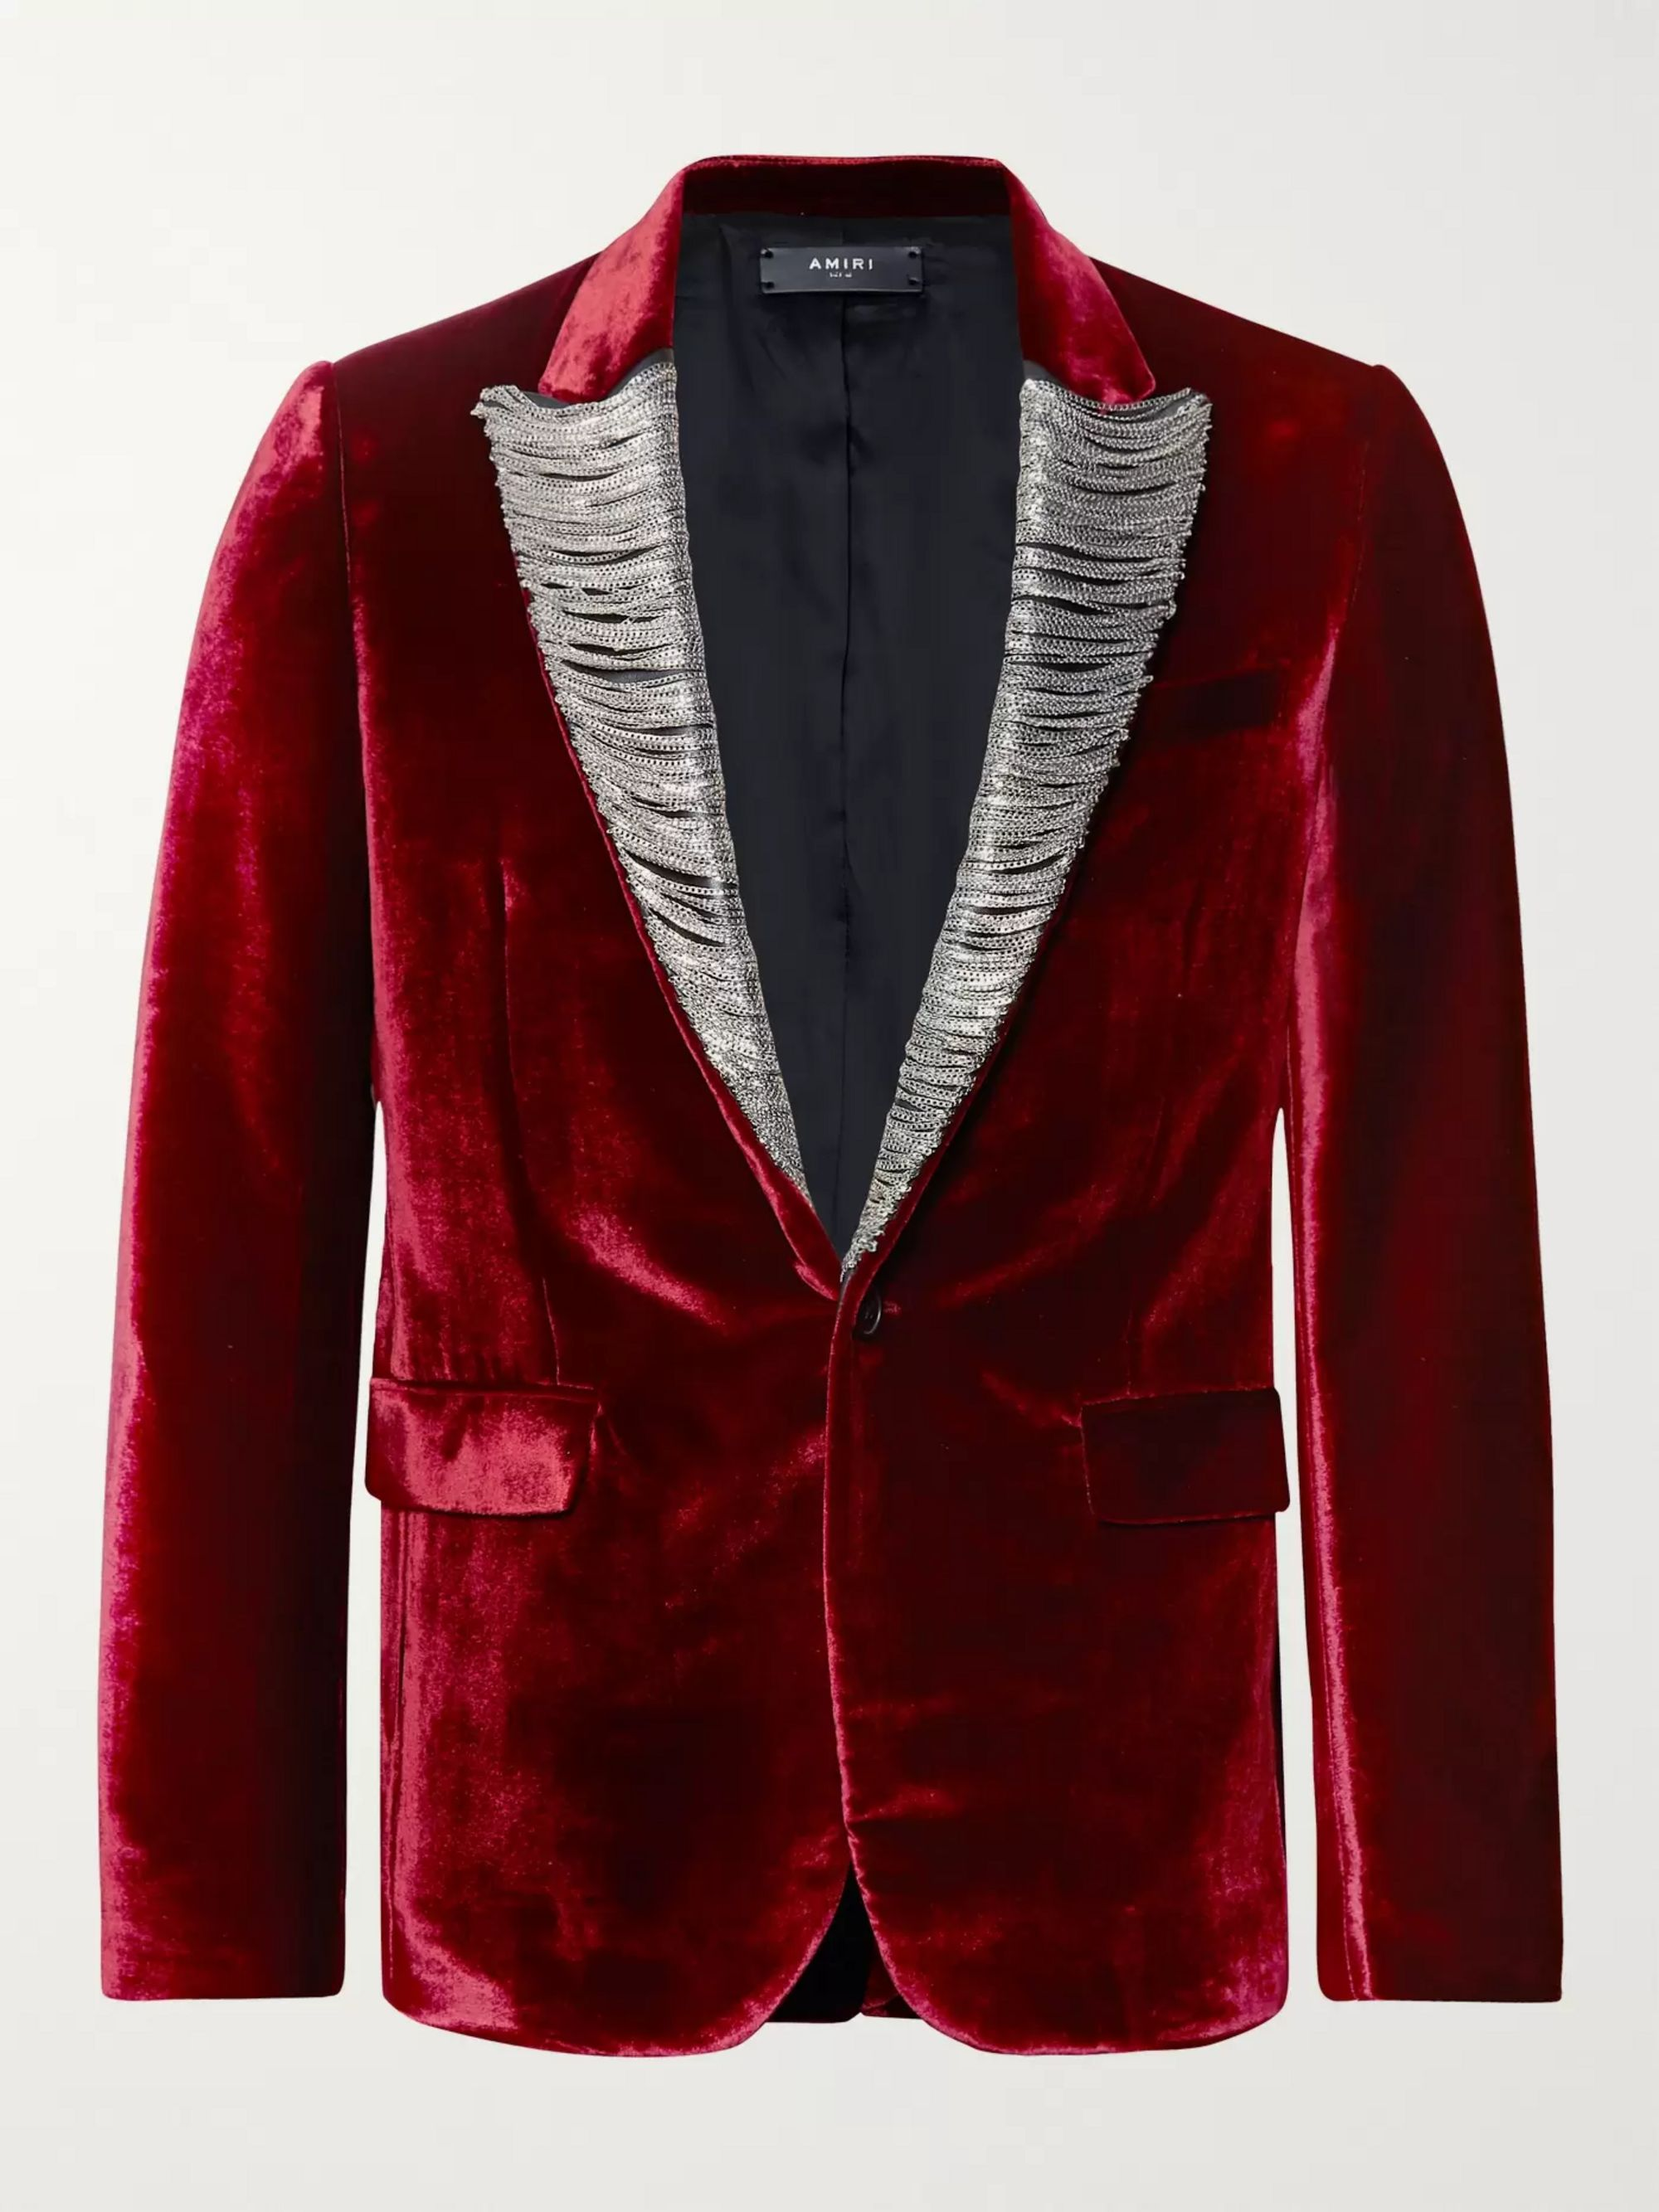 AMIRI Burgundy Slim-Fit Chain-Detailed Leather-Trimmed Silk-Velvet Blazer